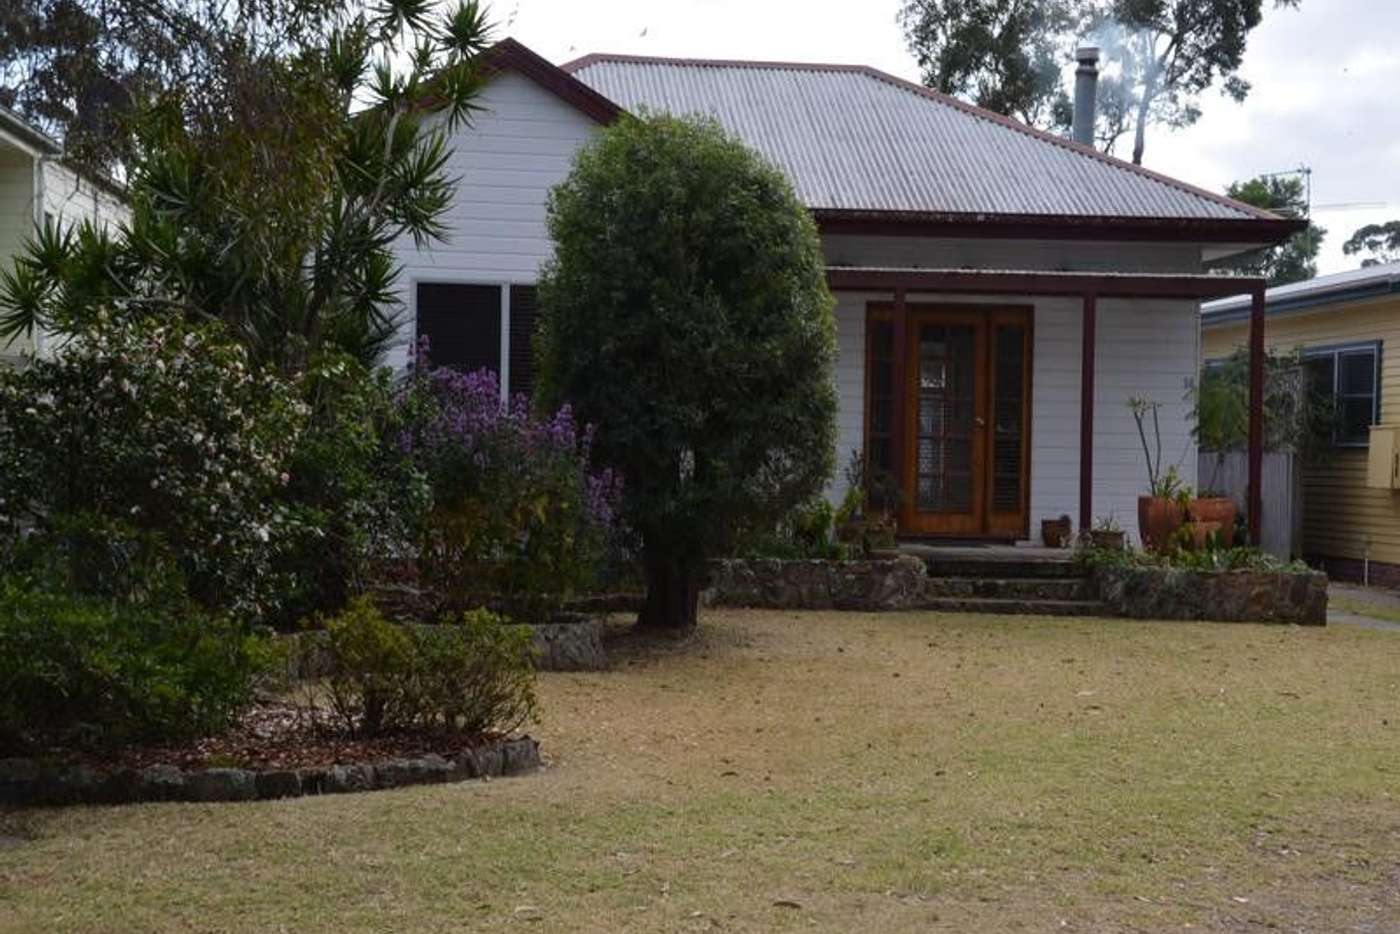 Main view of Homely house listing, 14 Burrawang street, Narooma NSW 2546